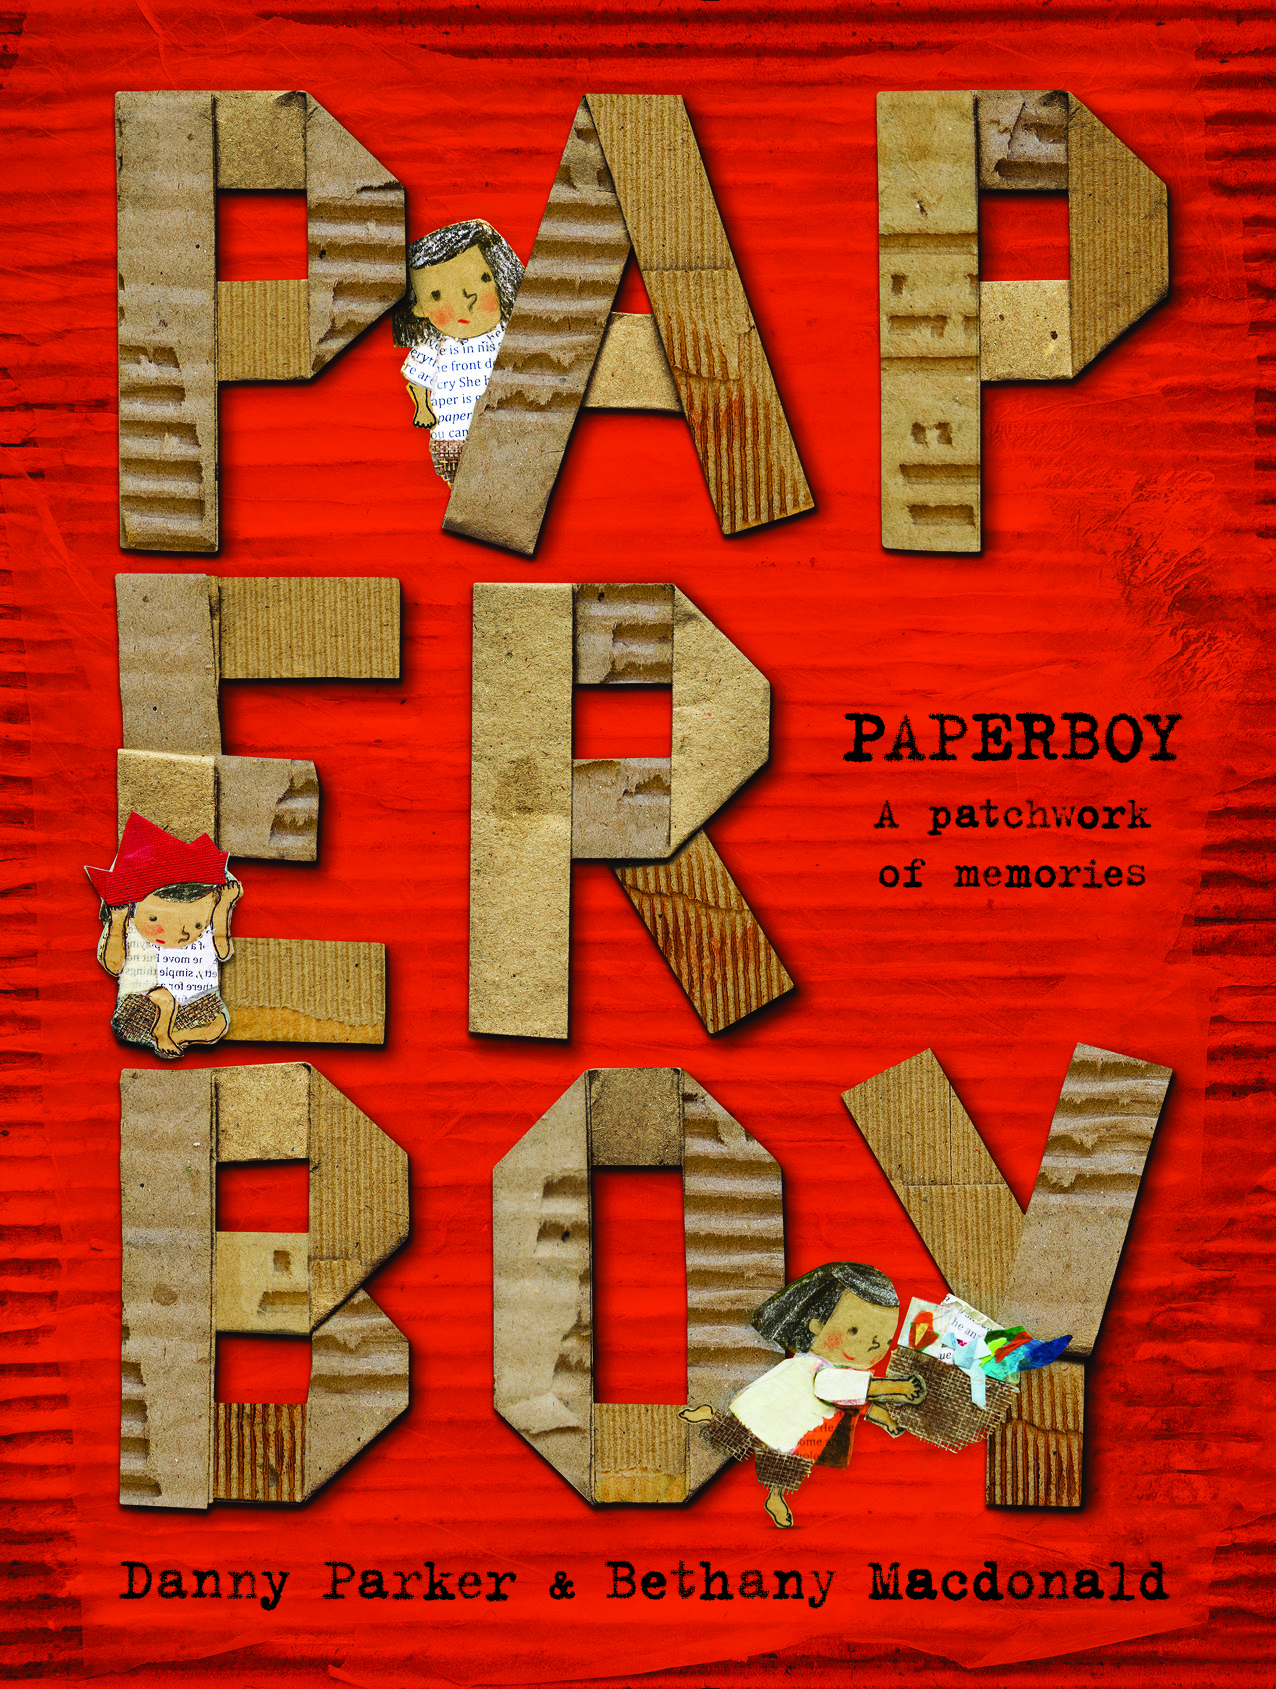 Paper Boy, cover